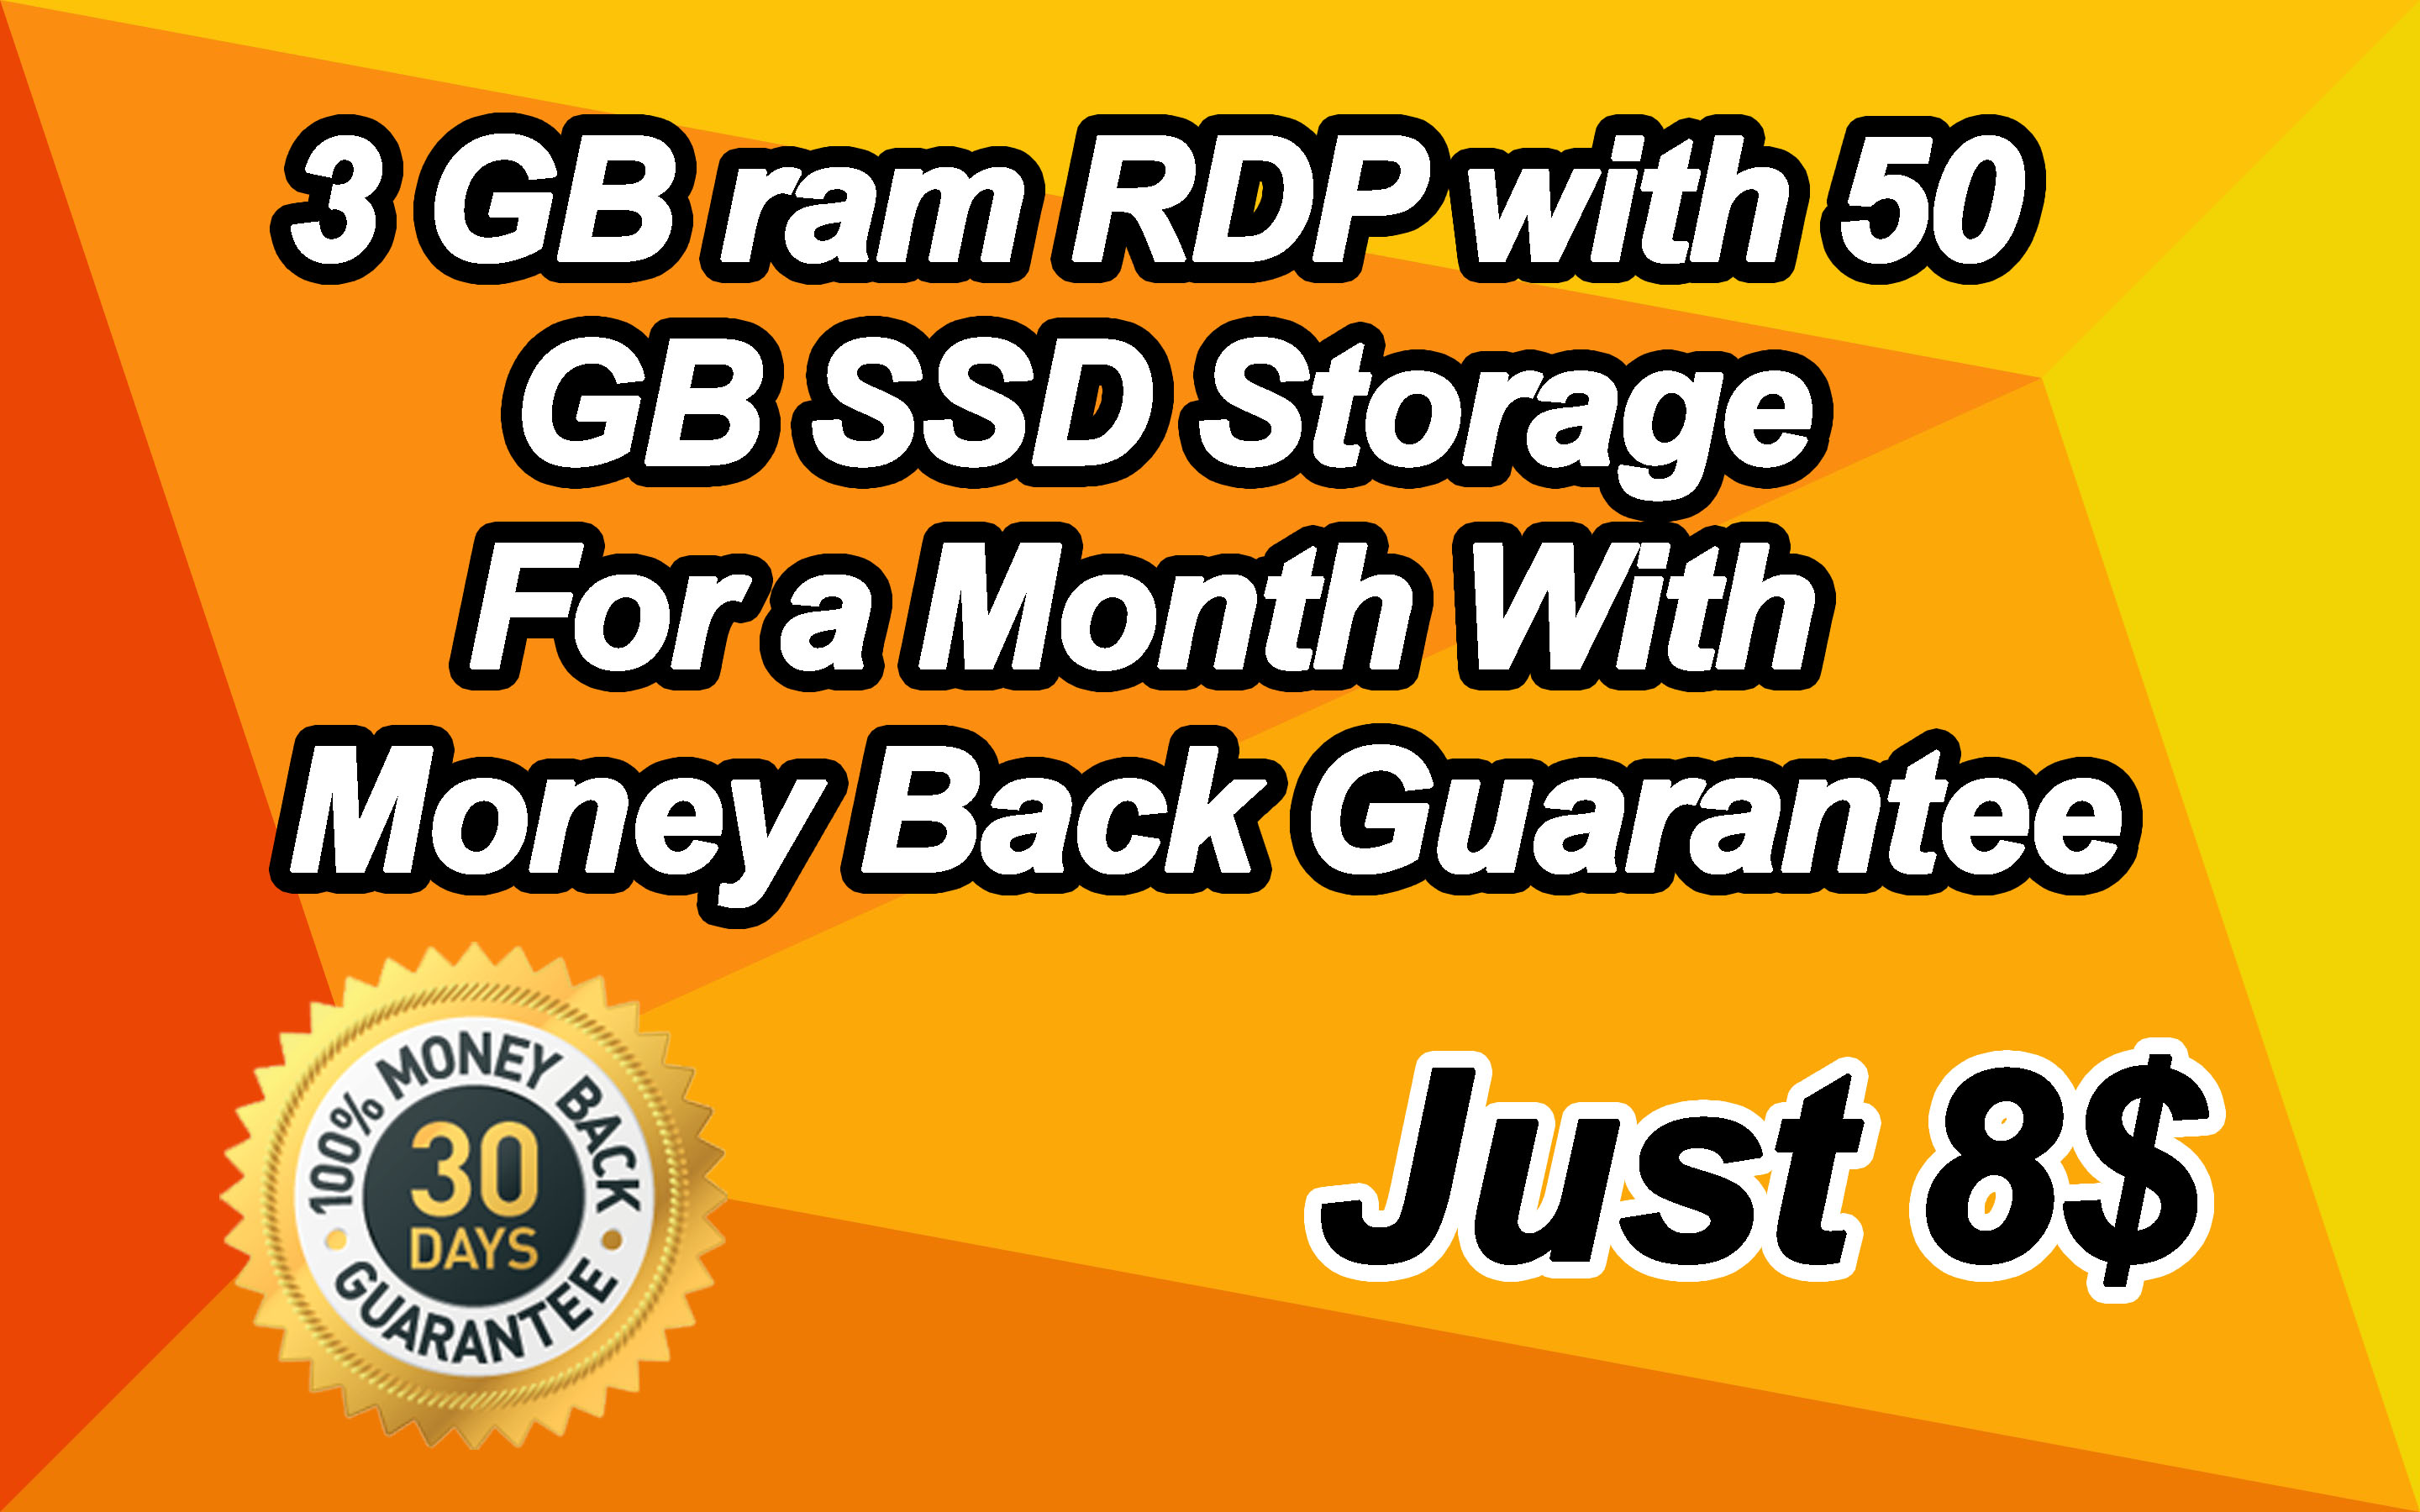 3 GB ram RDP with 50 GB SSD Storage For a Month With ...